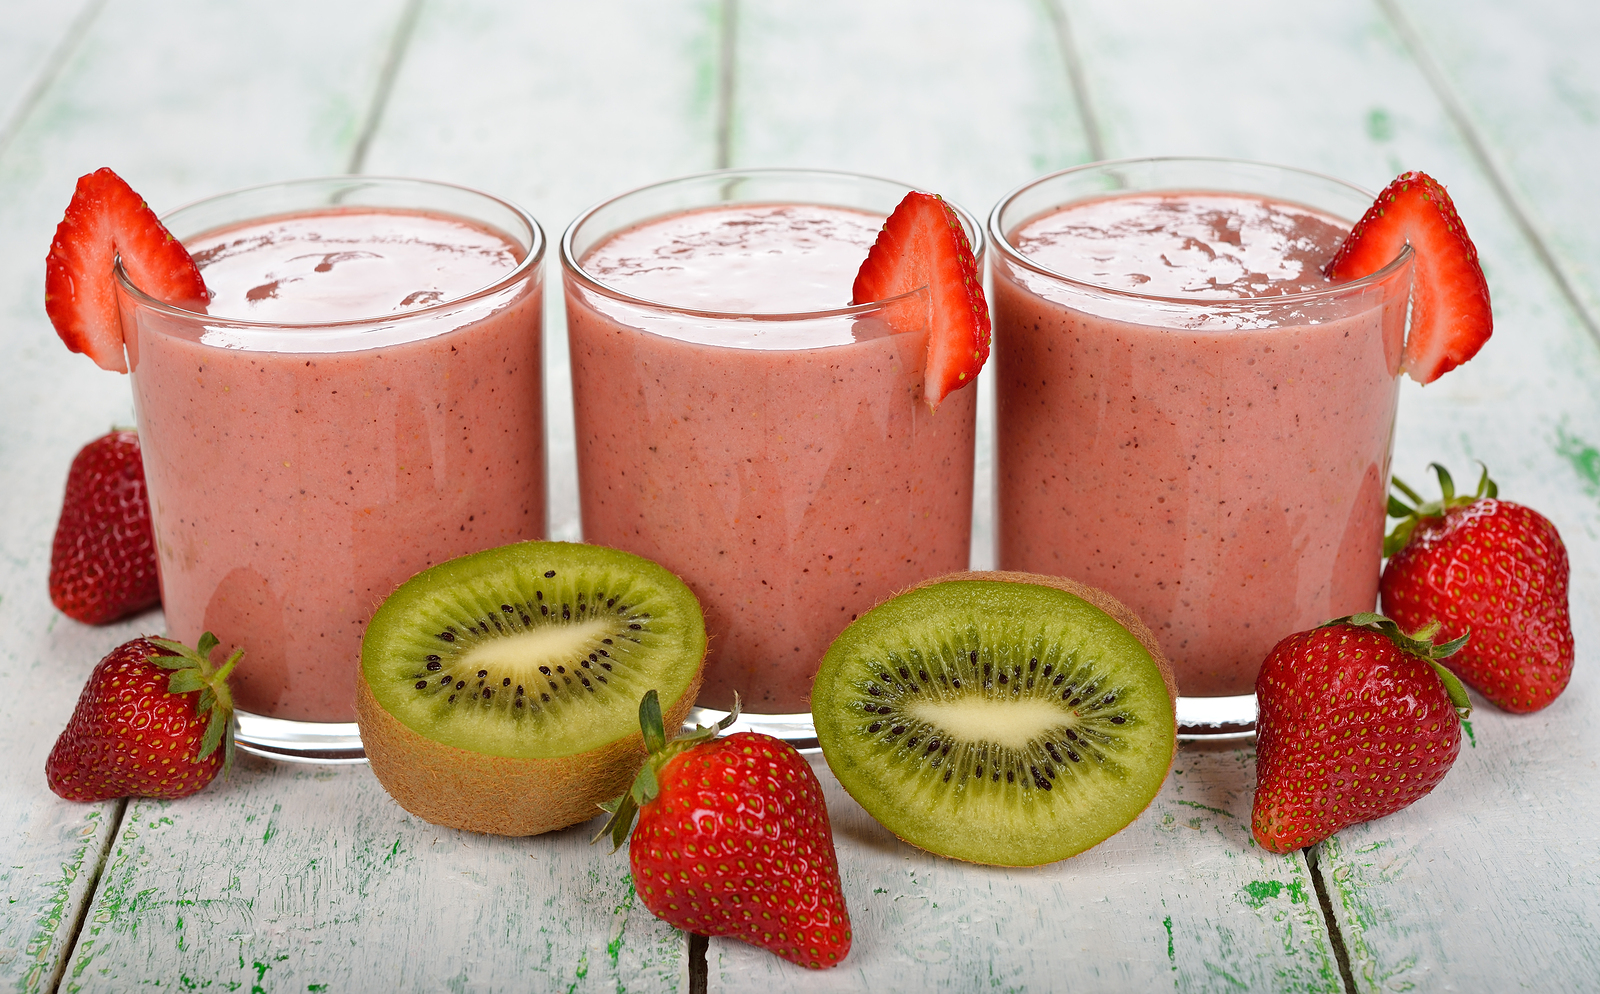 smoothie november 6 2015 kevin 0 comments kiwi smoothie strawberry